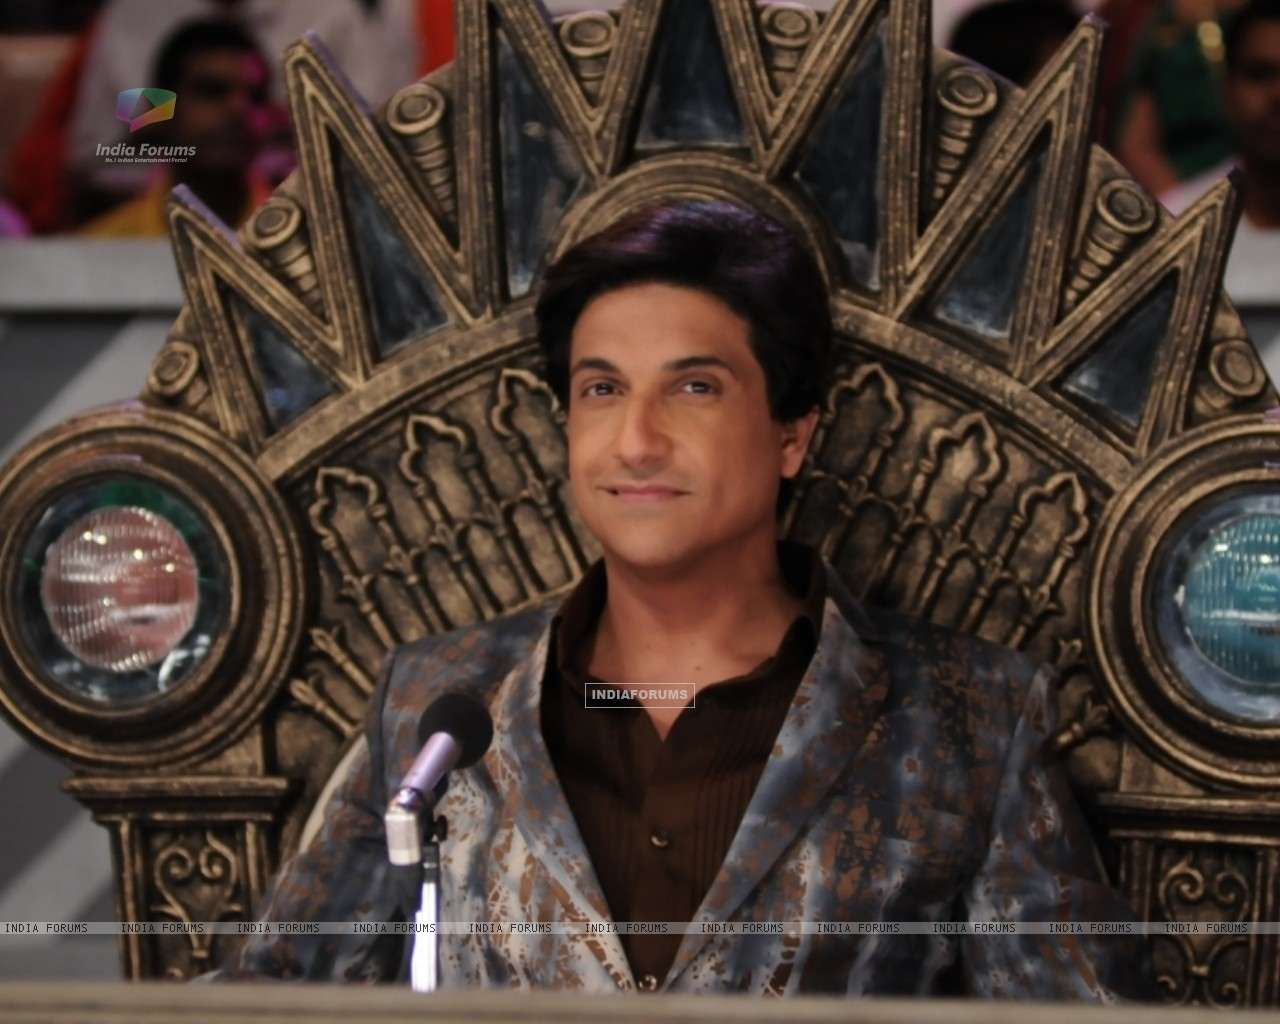 Shiamak Davar as a judge - Wallpaper (Size:1280x1024)